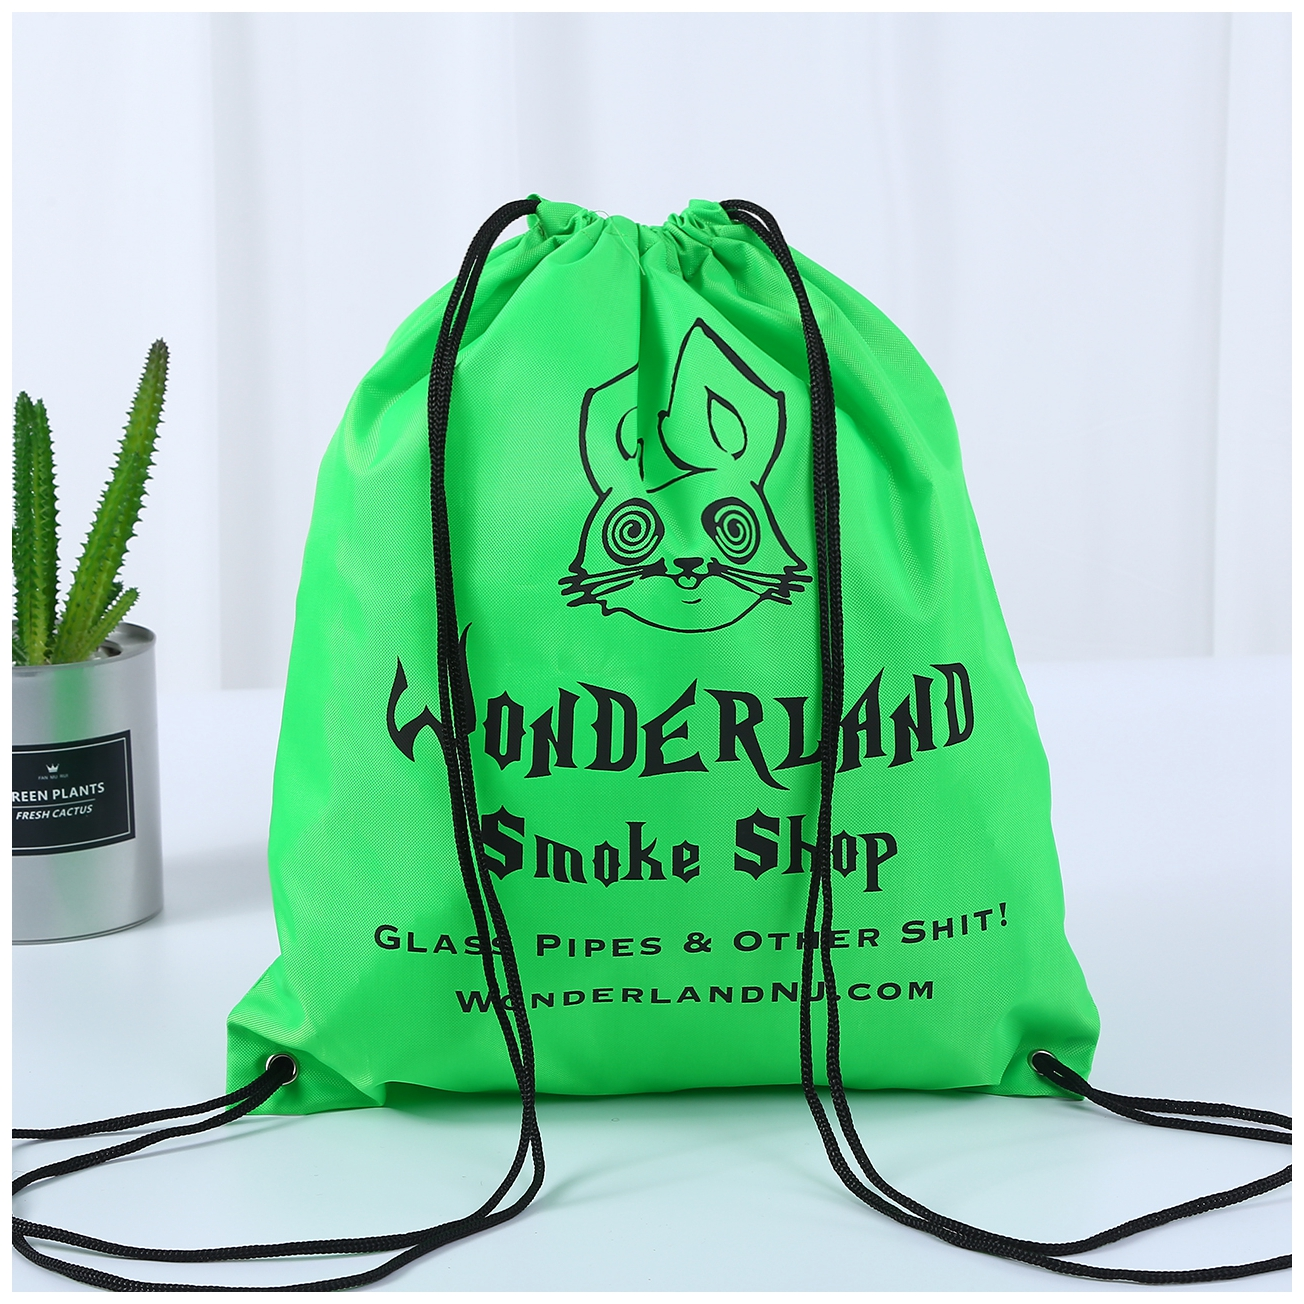 Woderland Smoke Shop Drawstring backpack